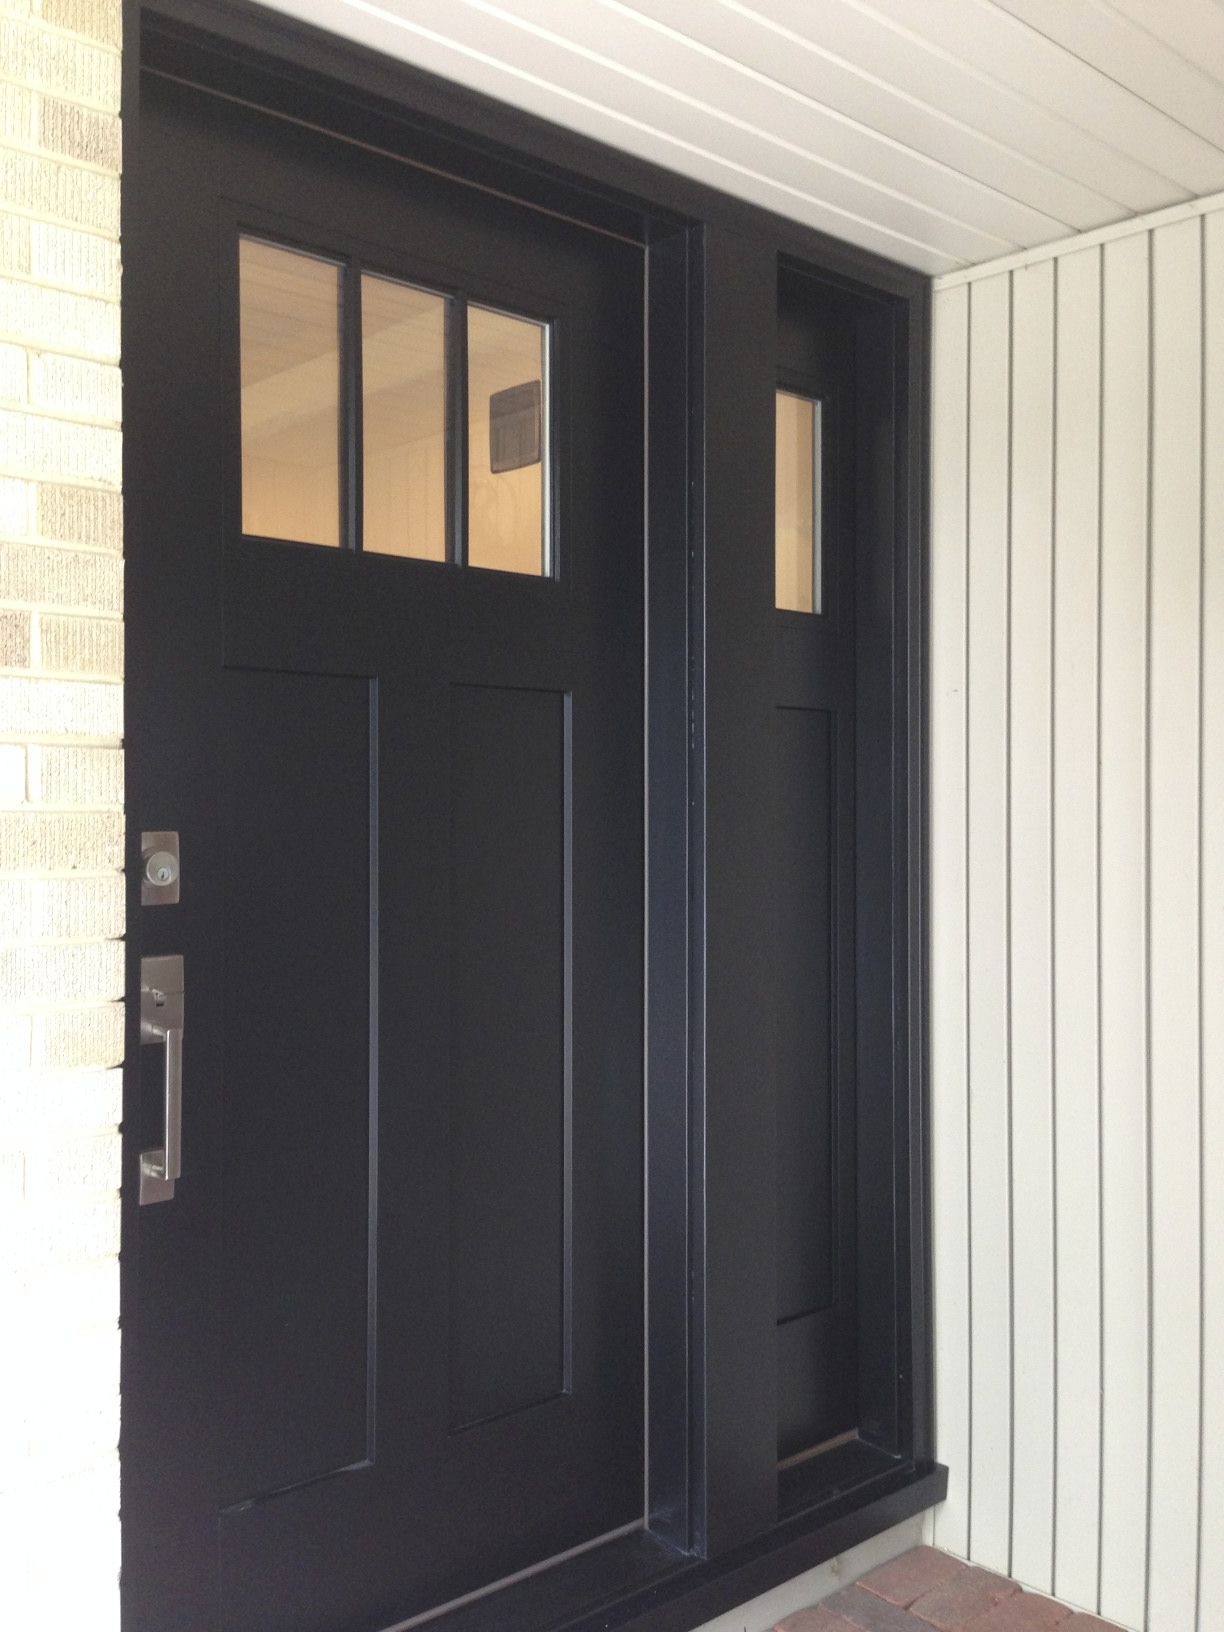 White masonite interior doors - Steel vs fiberglass exterior door ...